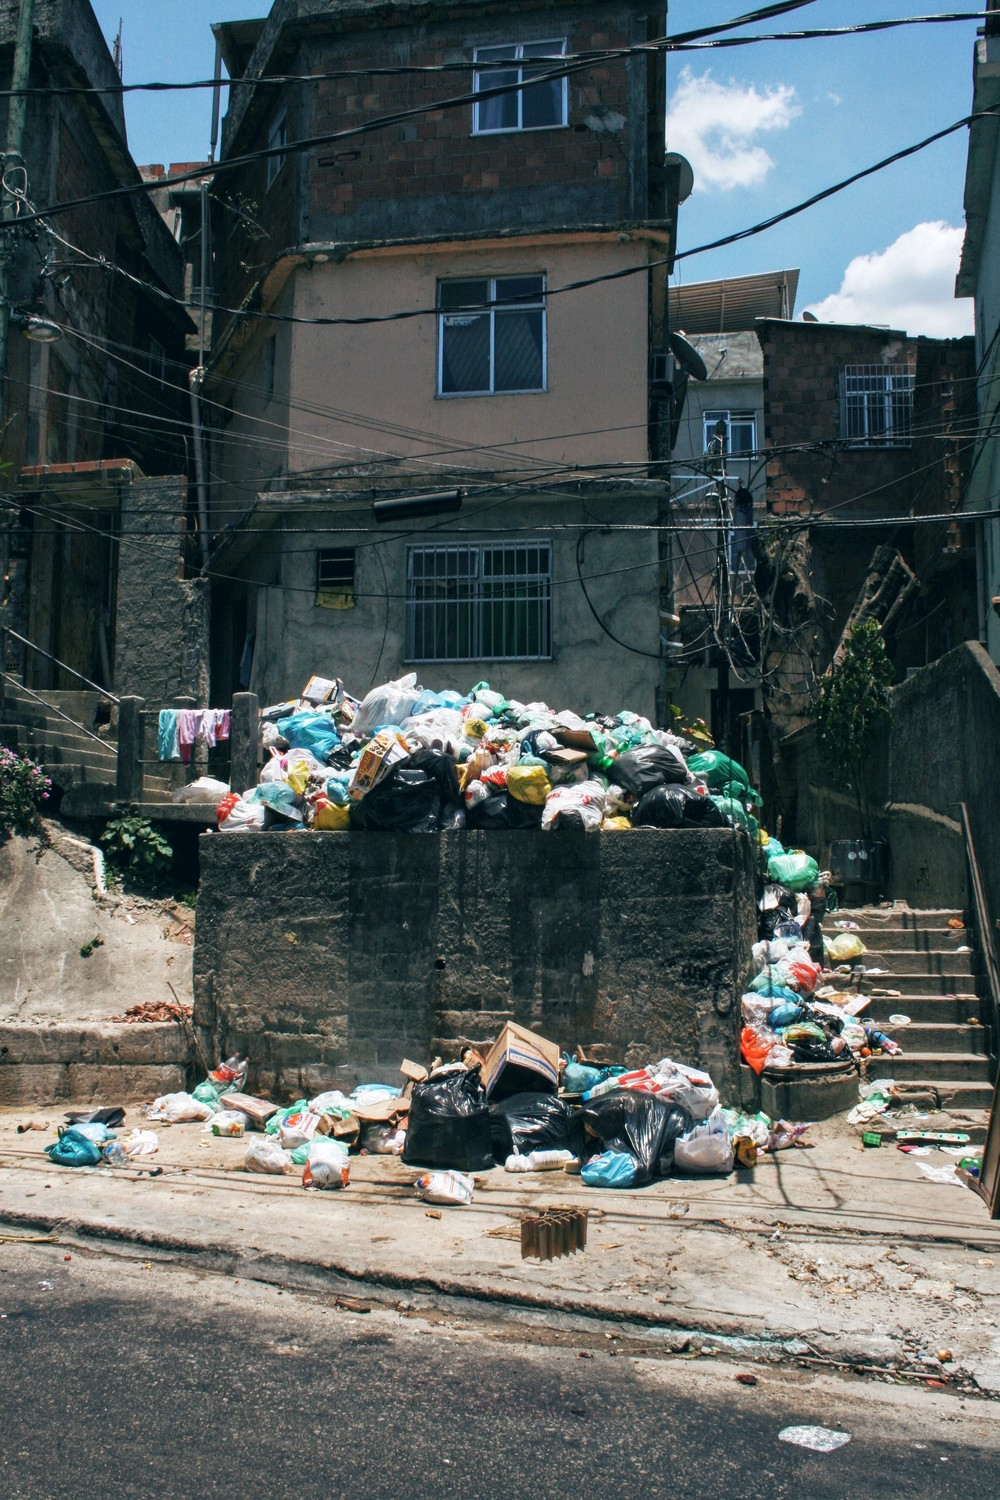 Stark contrast between the rich and the poor, favelas in ruins and full of garbage